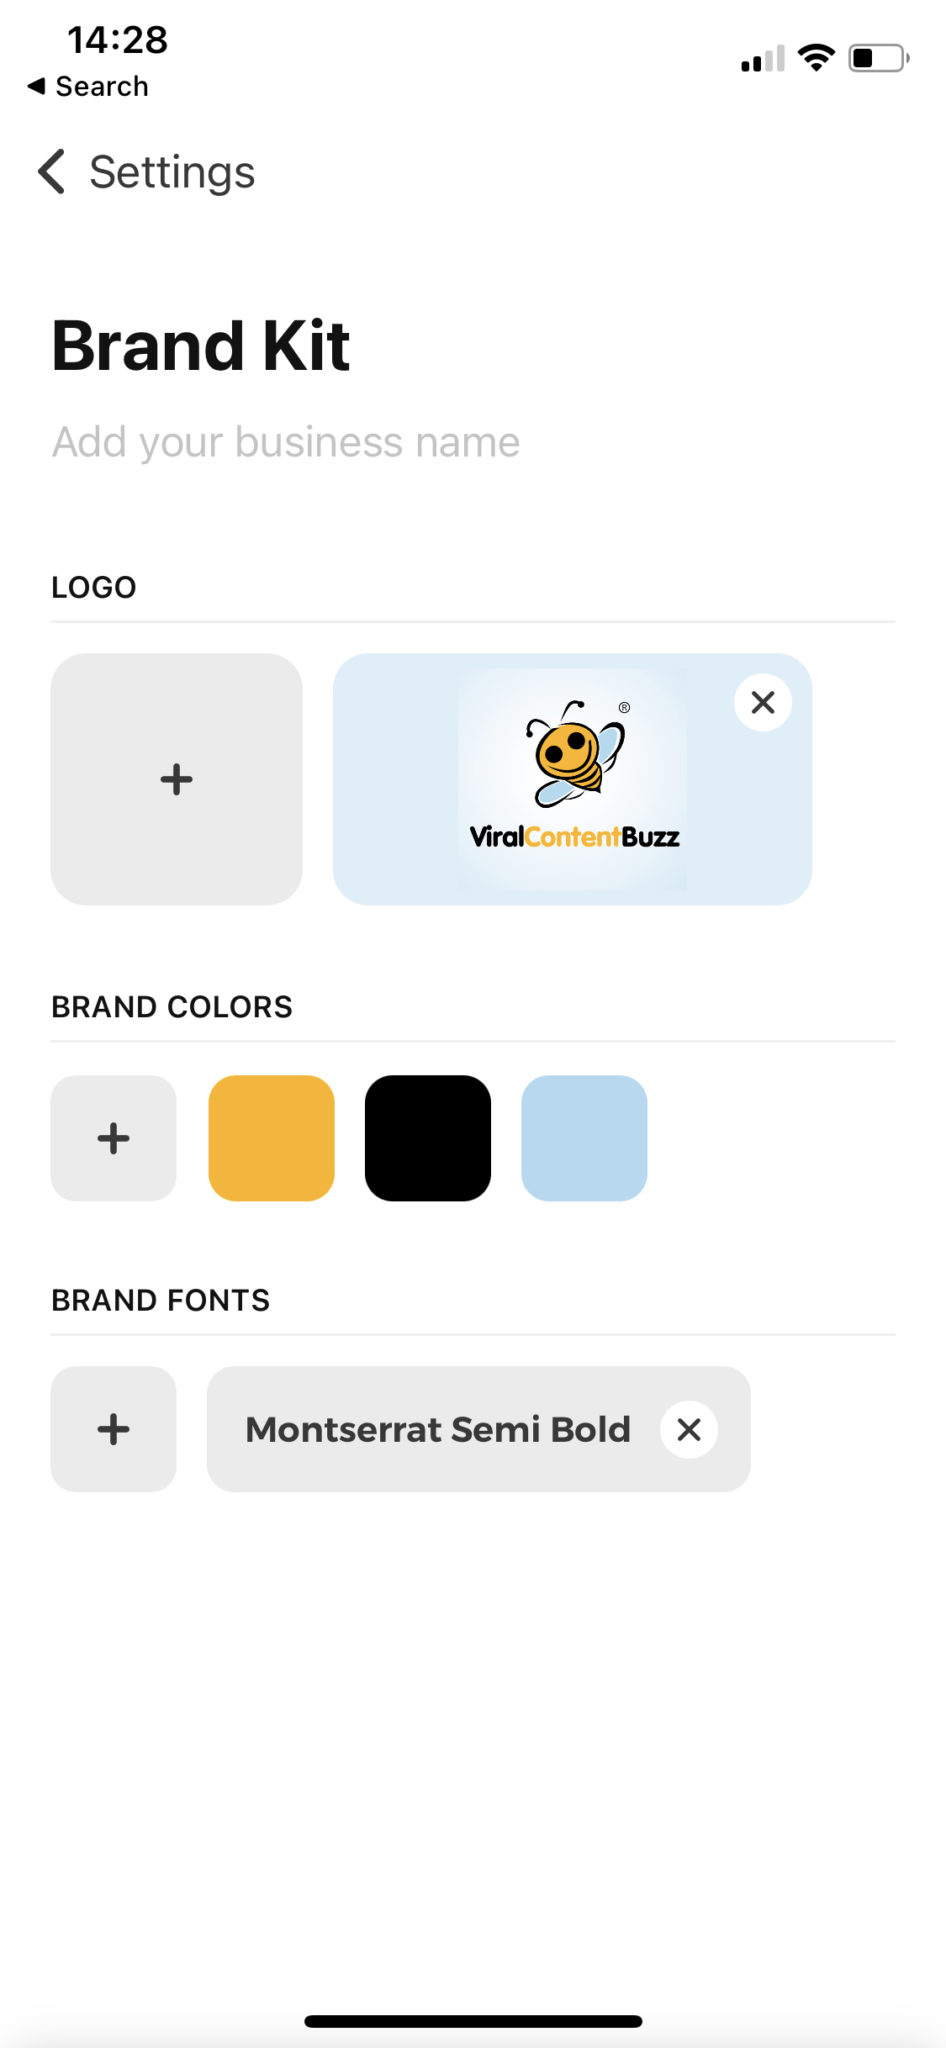 Creating a brand kit for seasonal campaigns